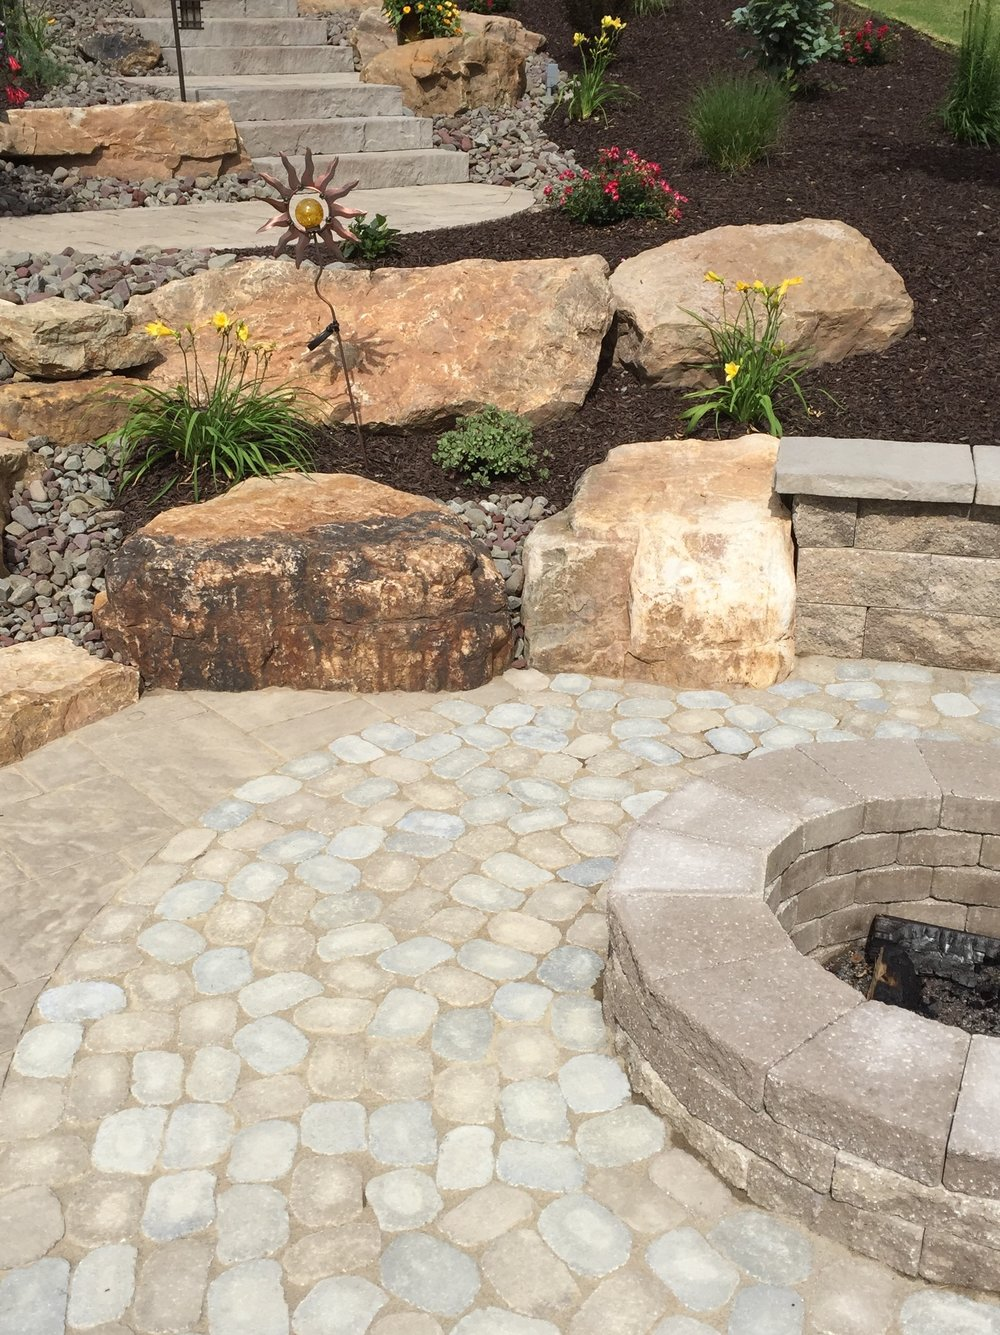 Landscape design ideas with an outdoor fireplace in Reading, PA